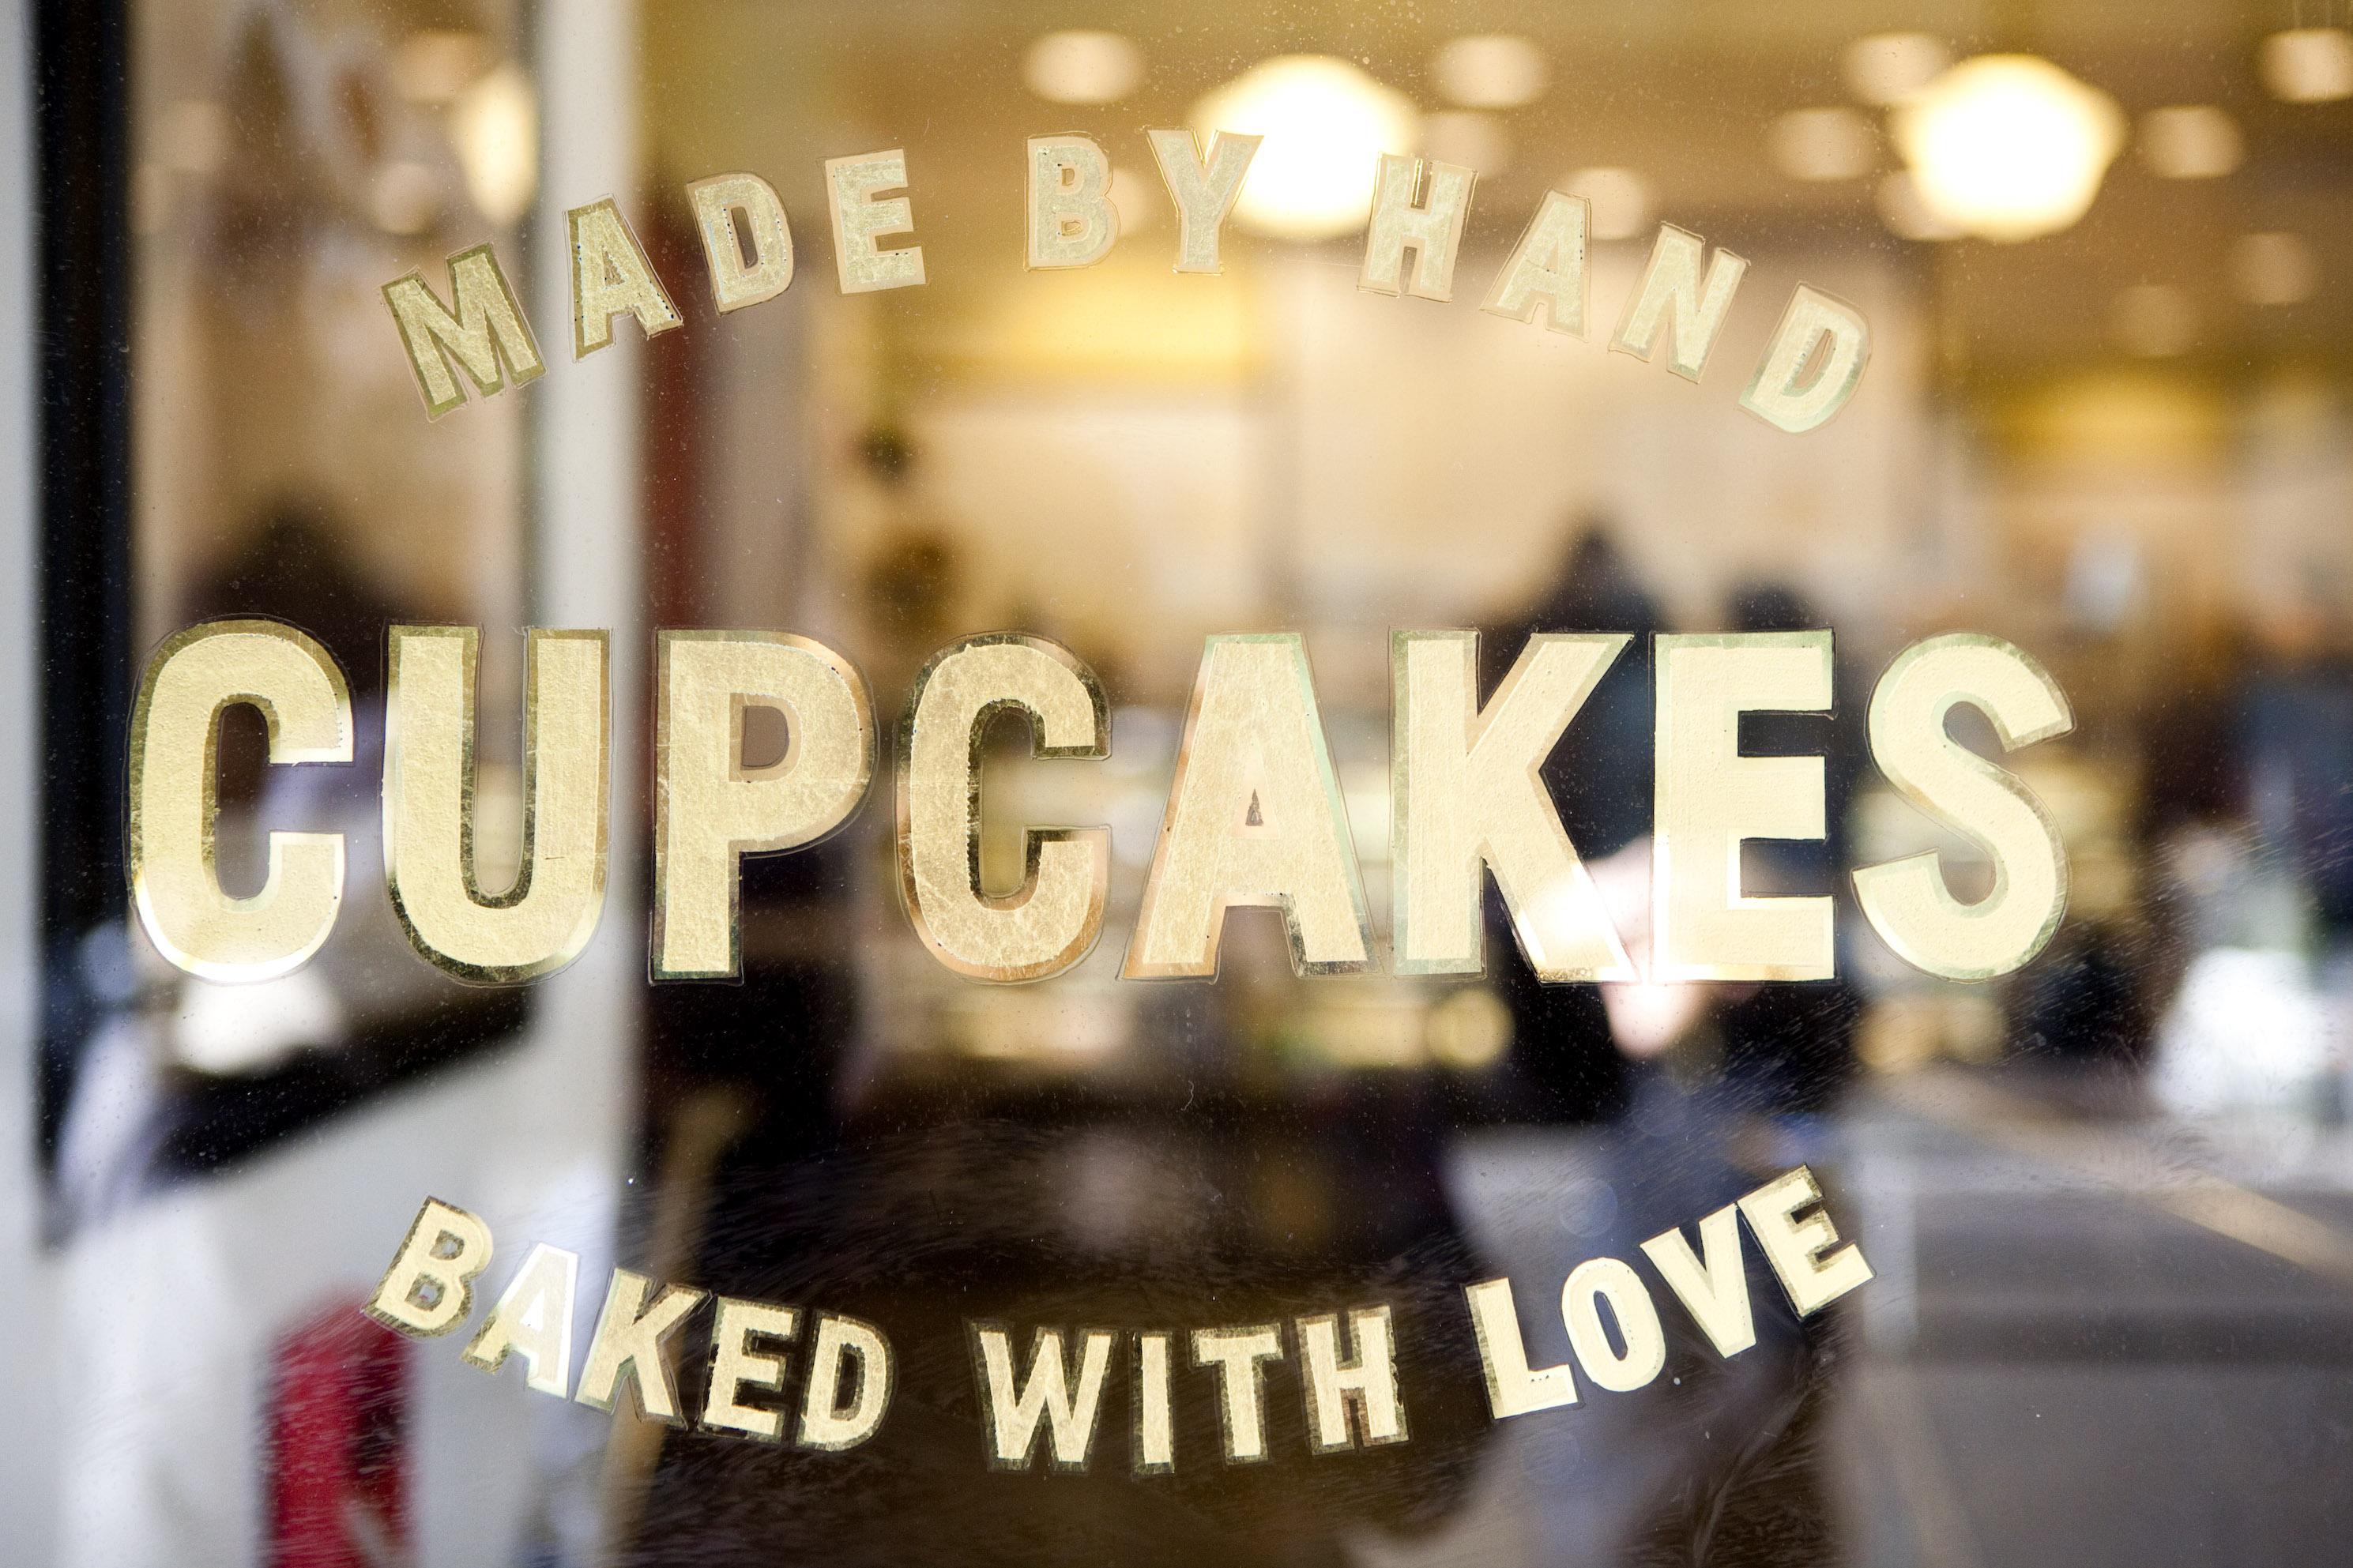 A sign advertises hand-baked cupcakes at a Crumbs cupcake store in New York, U.S., on Thursday, Jan. 13, 2011.